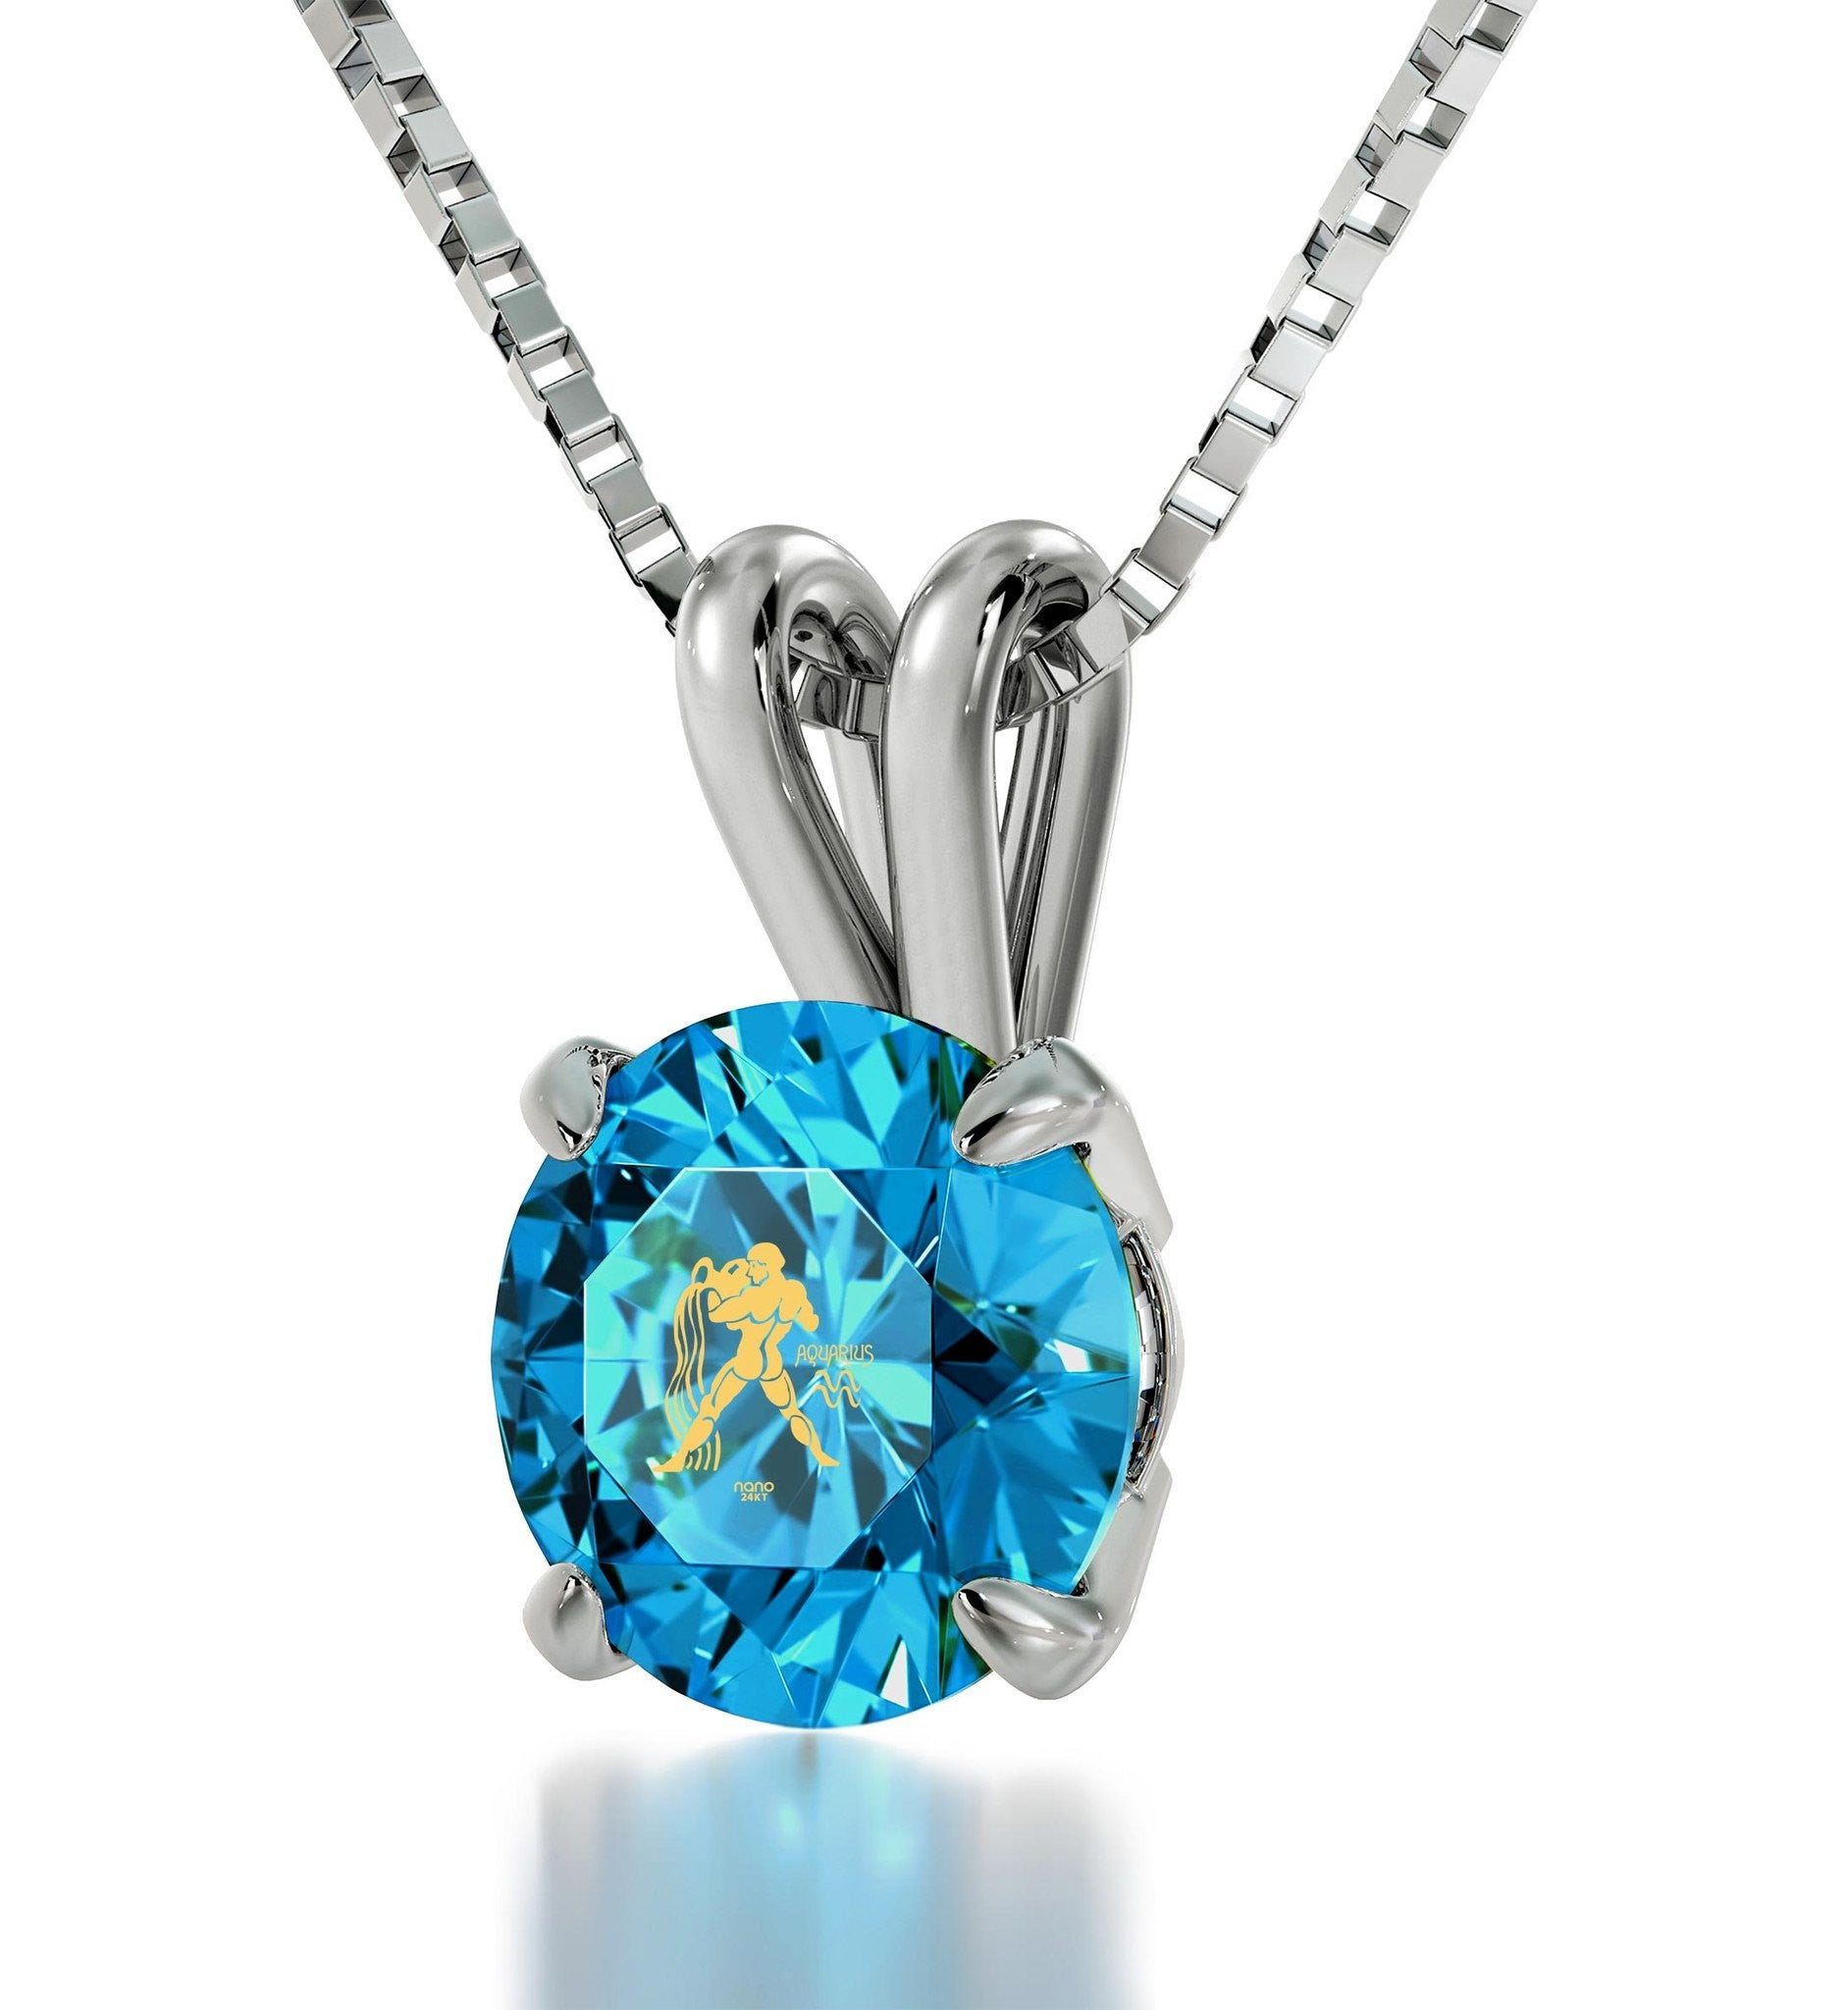 """Aquarius Pendant With Zodiac Imprint, Cute Necklaces for Her, Gifts for Best Friend Woman, Blue Topaz Jewelry """